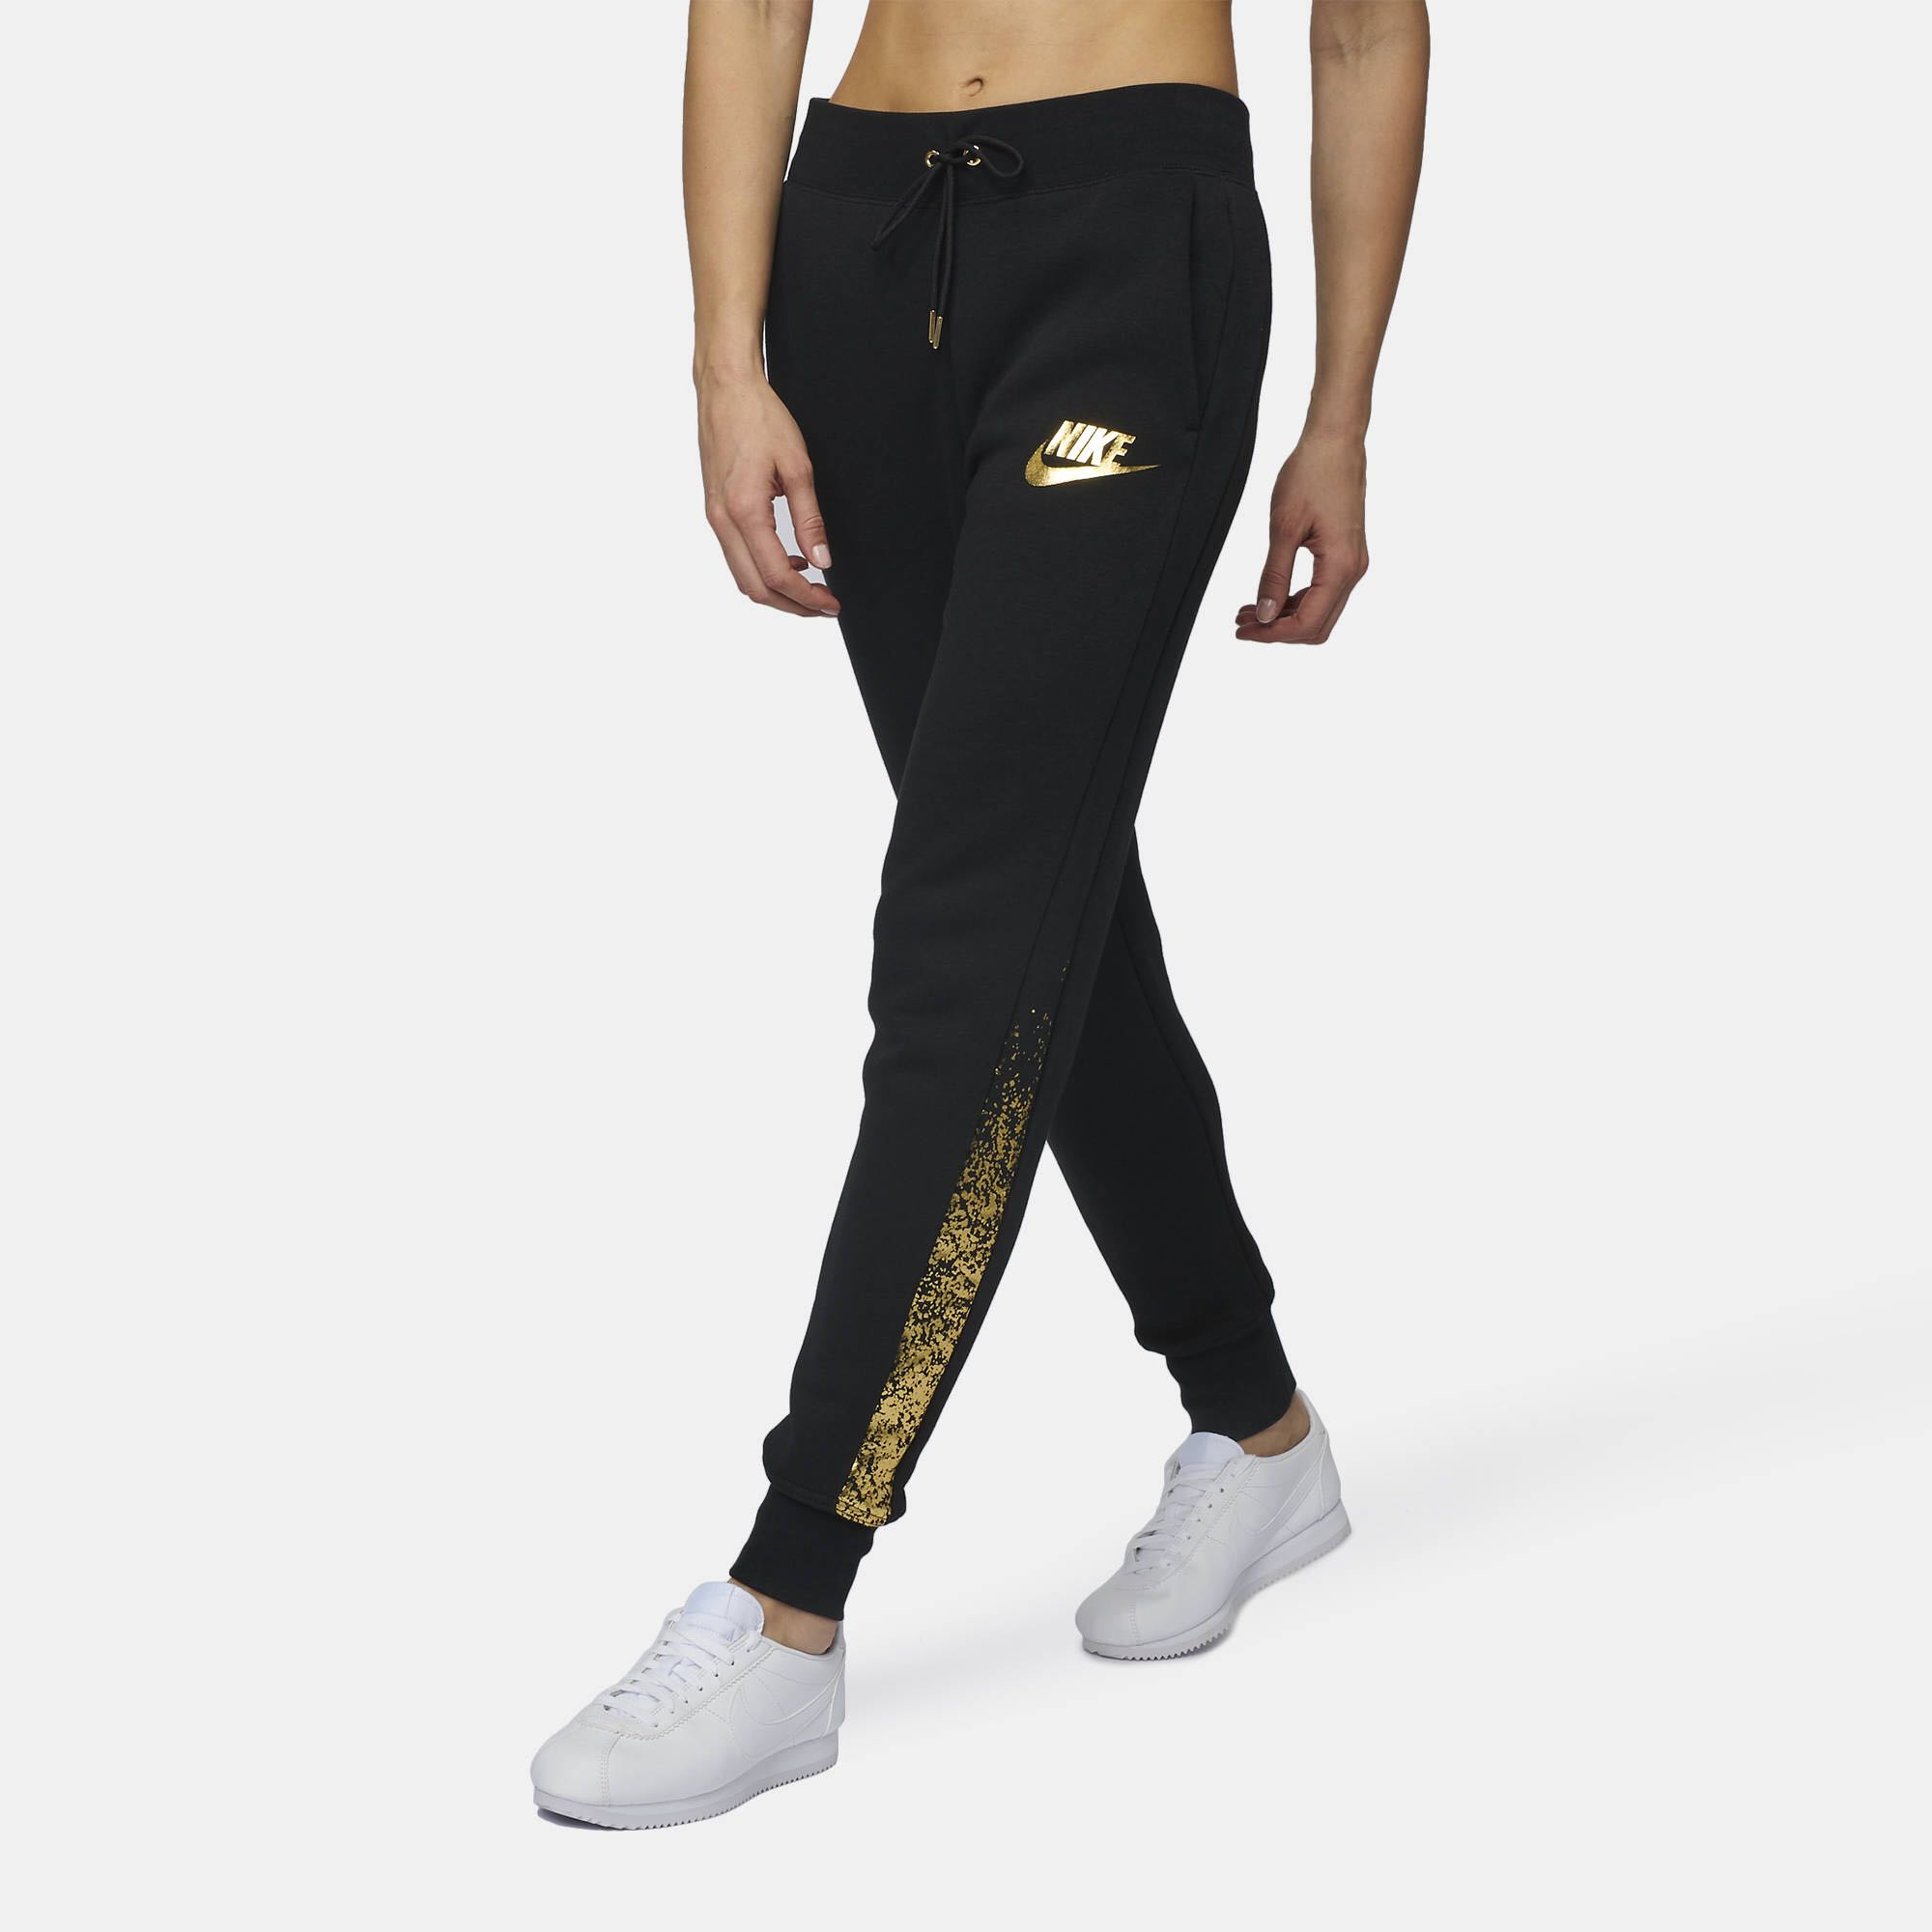 wide selection of colours and designs fair price special sales {Nike} Rally Sweatpants